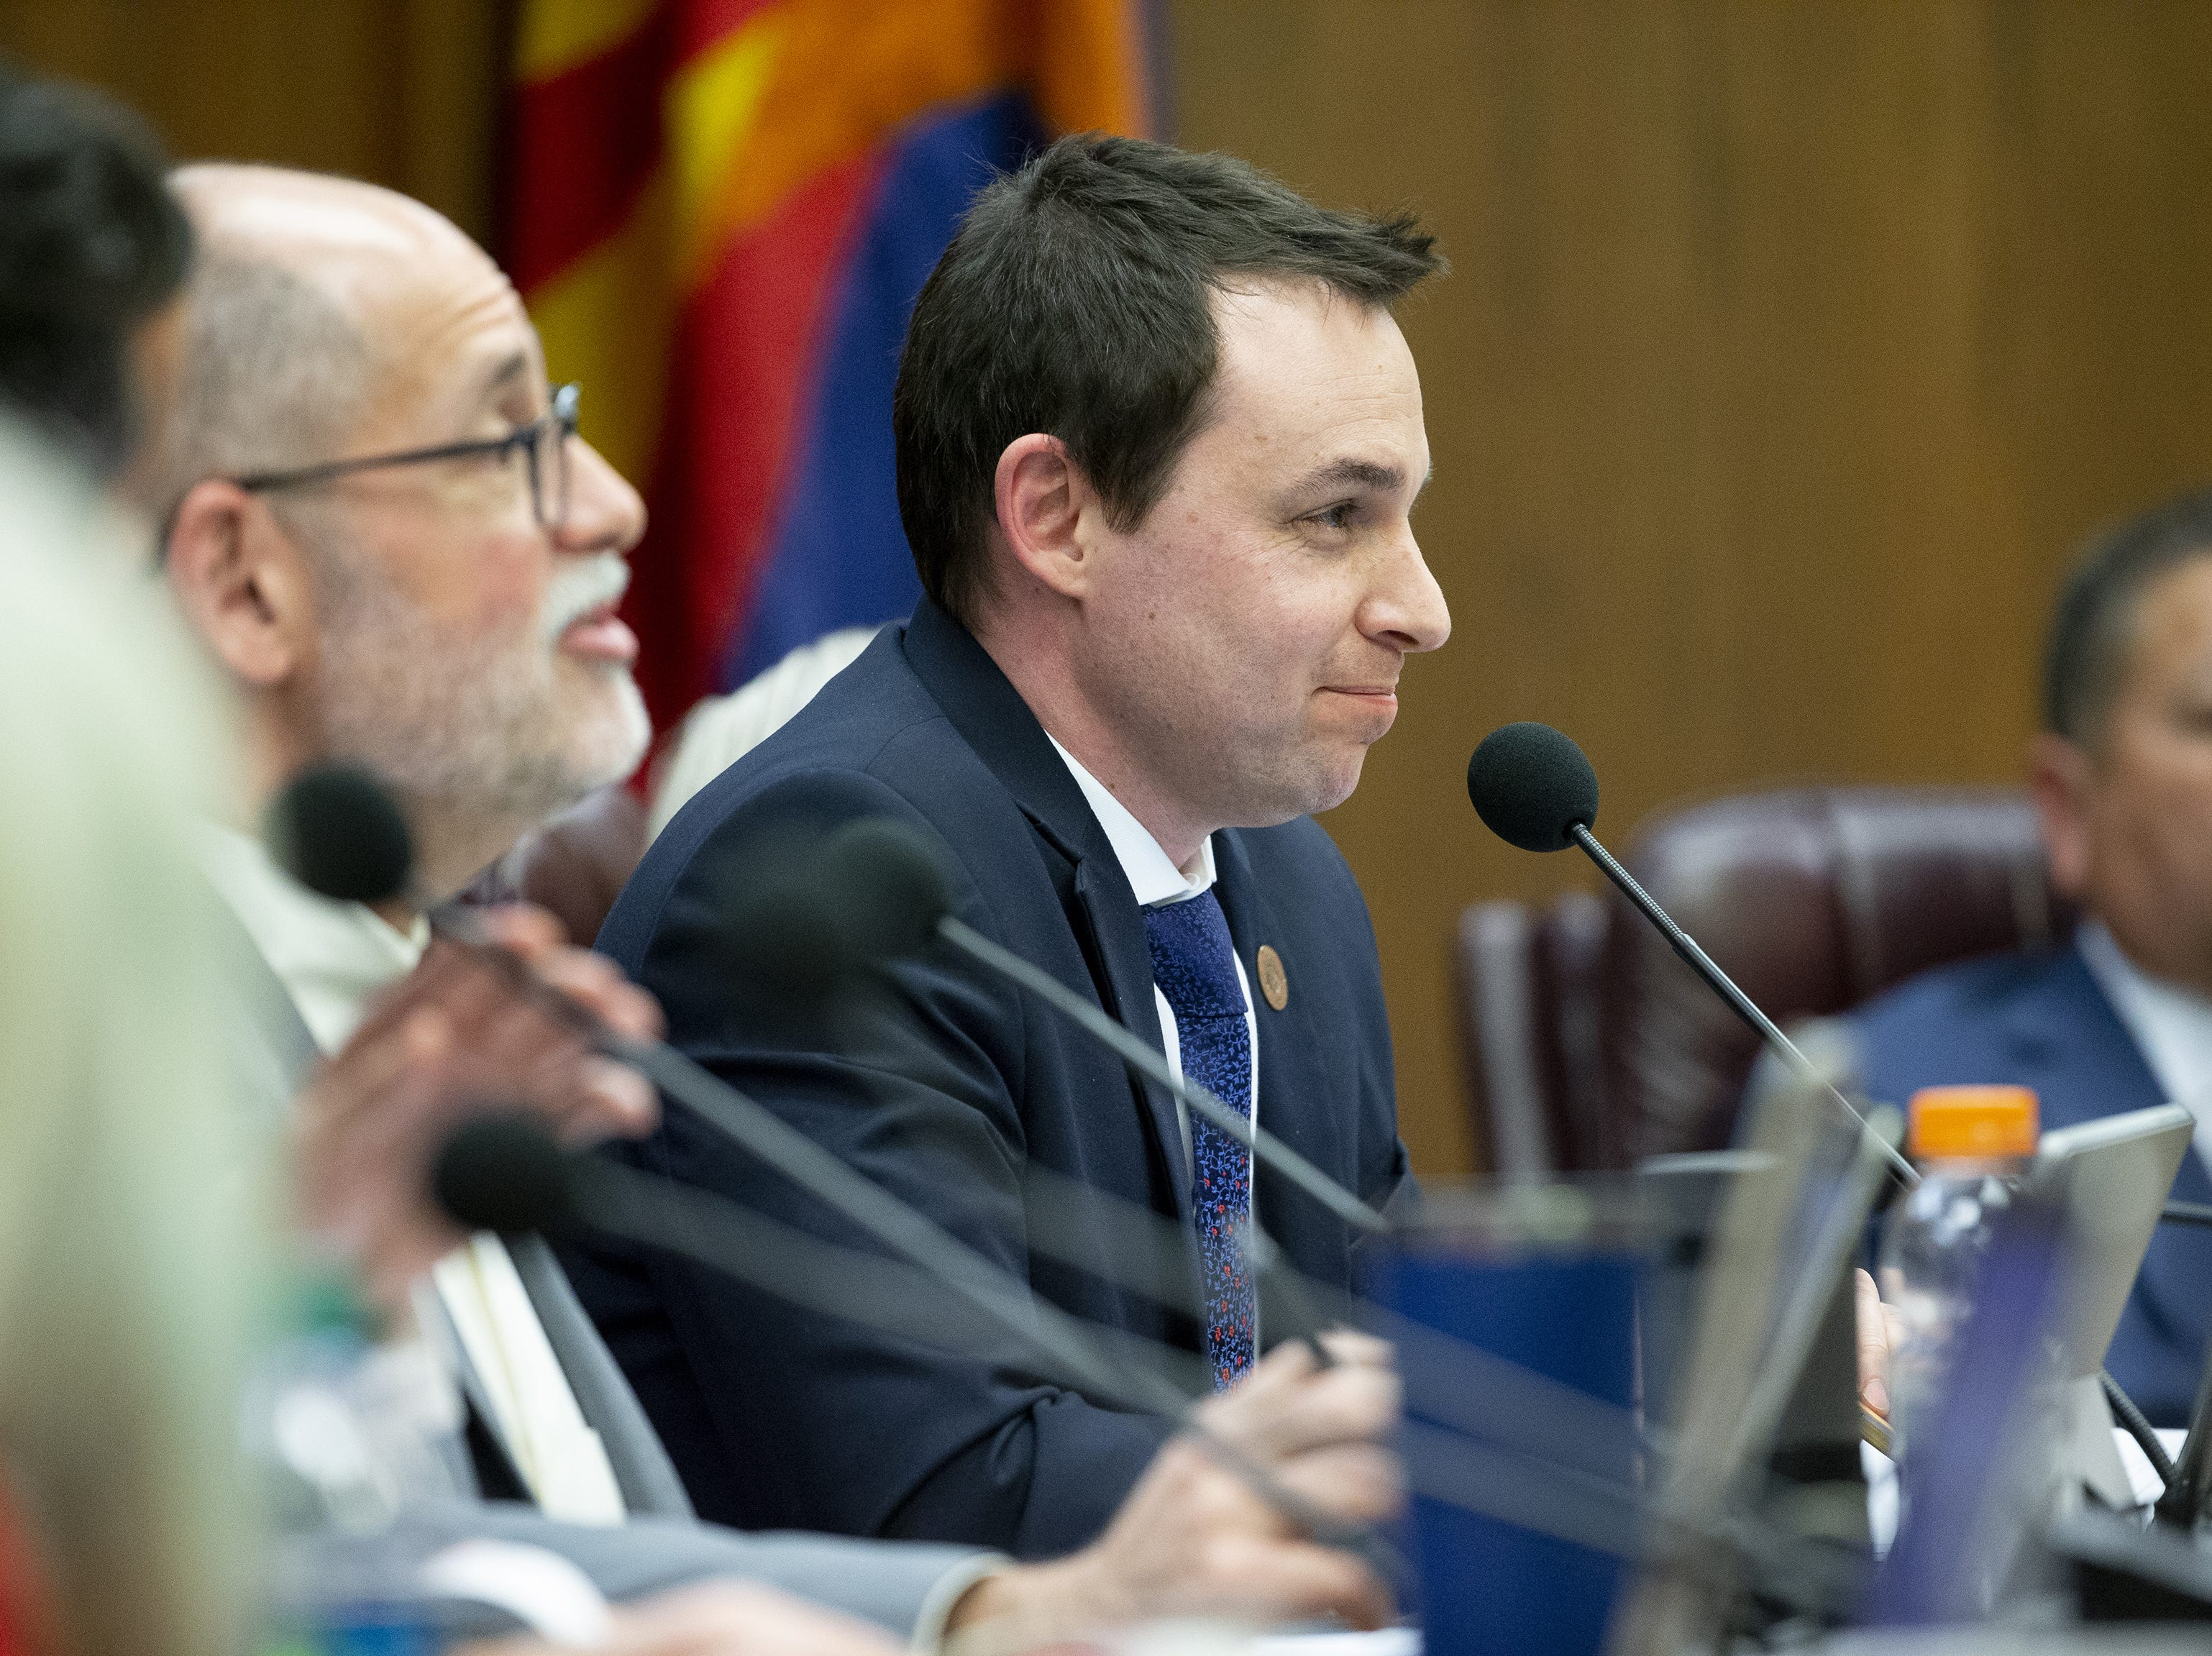 J.D. Mesnard, R-Chandler, senate finance committee chairman, listens during a hearing on school vouchers at the state Capitol in Phoenix on February 13.